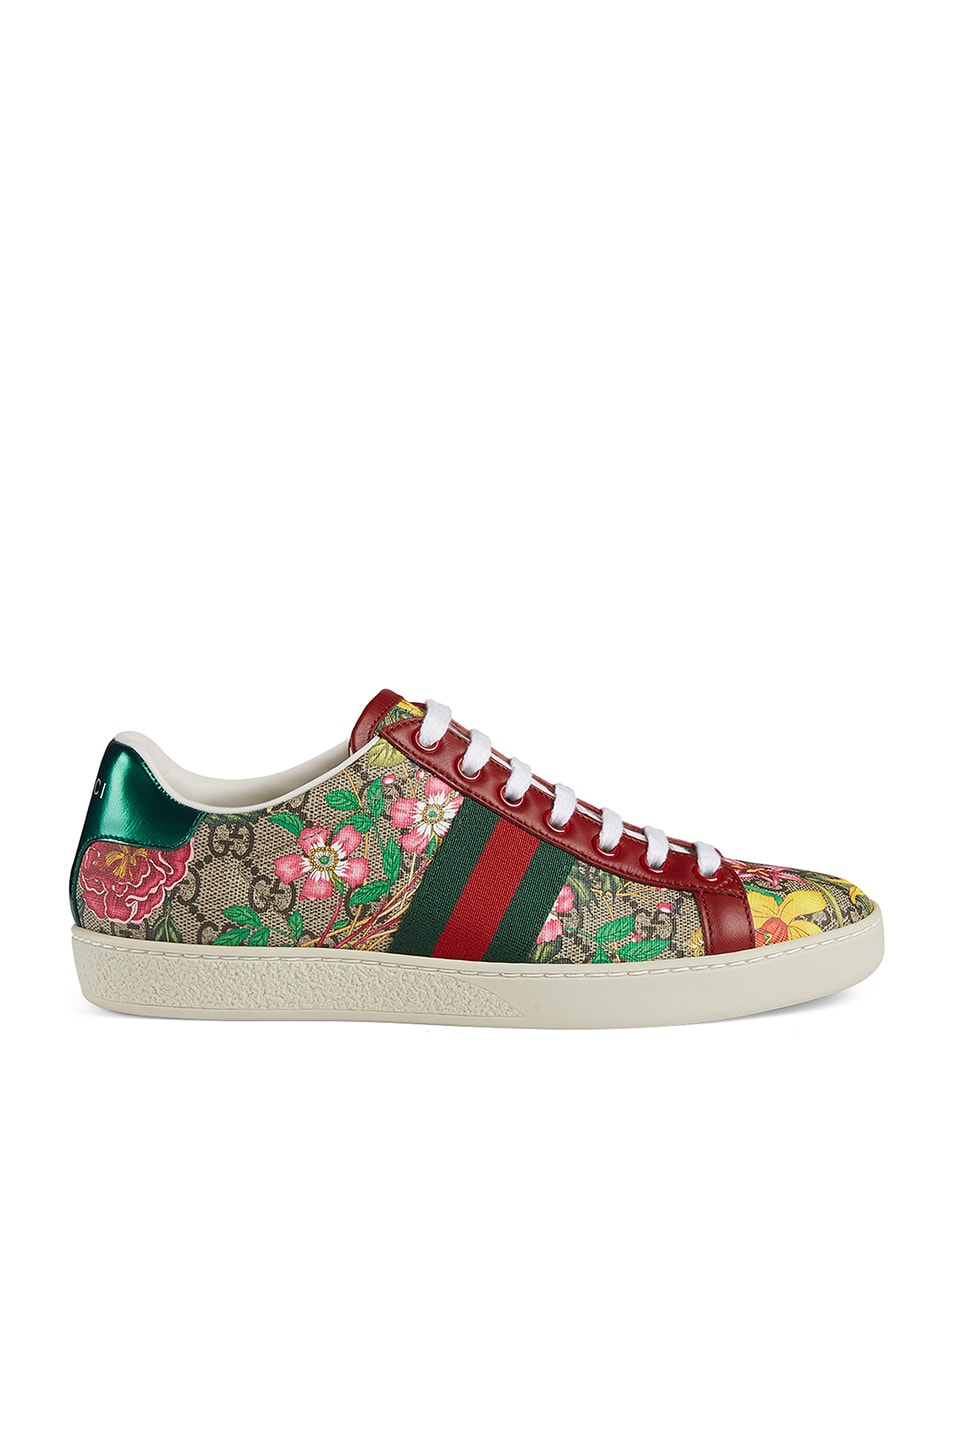 Image 1 of Gucci New Ace GG Floral Sneakers in Beige Ebony